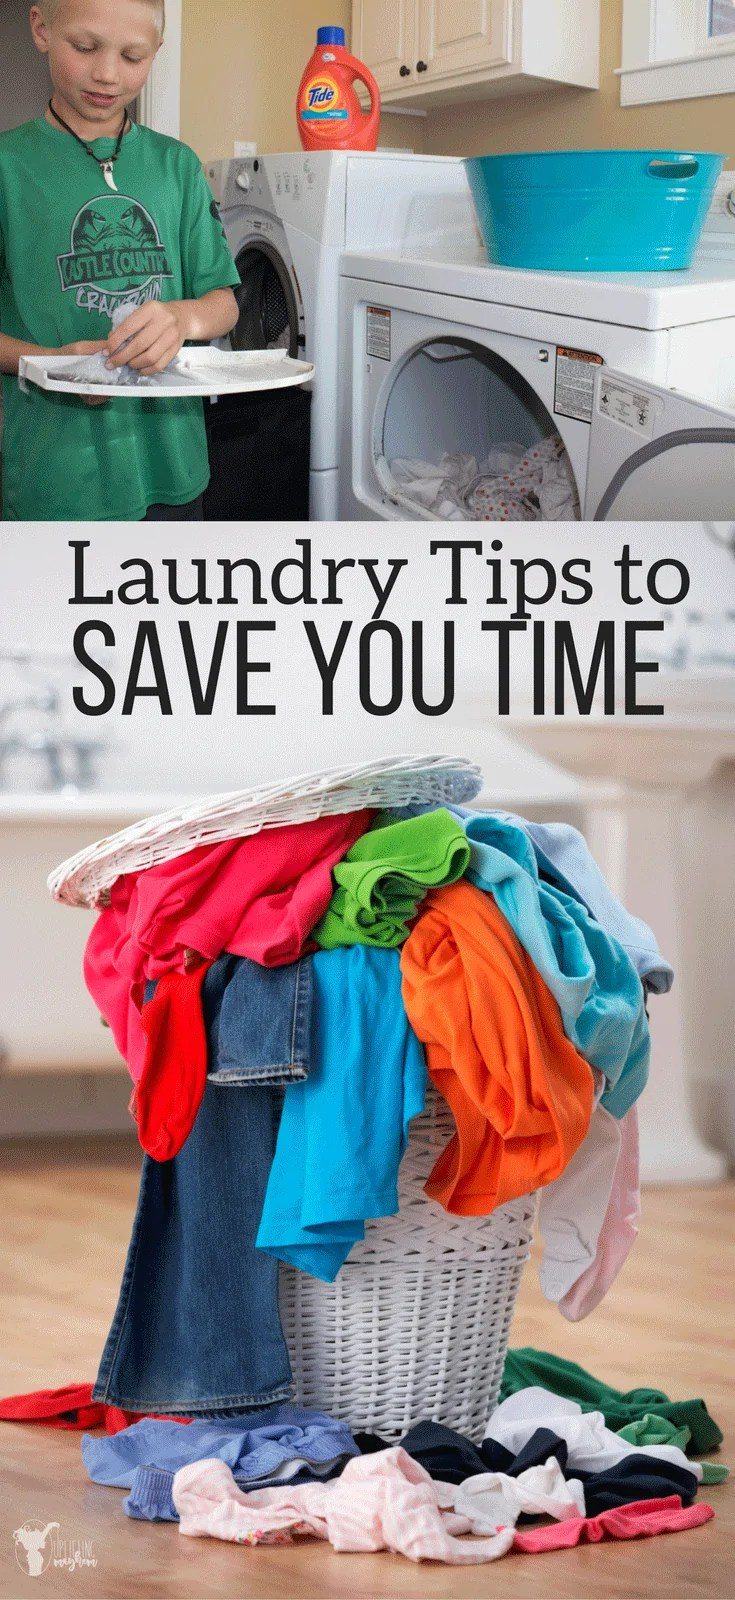 Laundry Tips to Save you Time